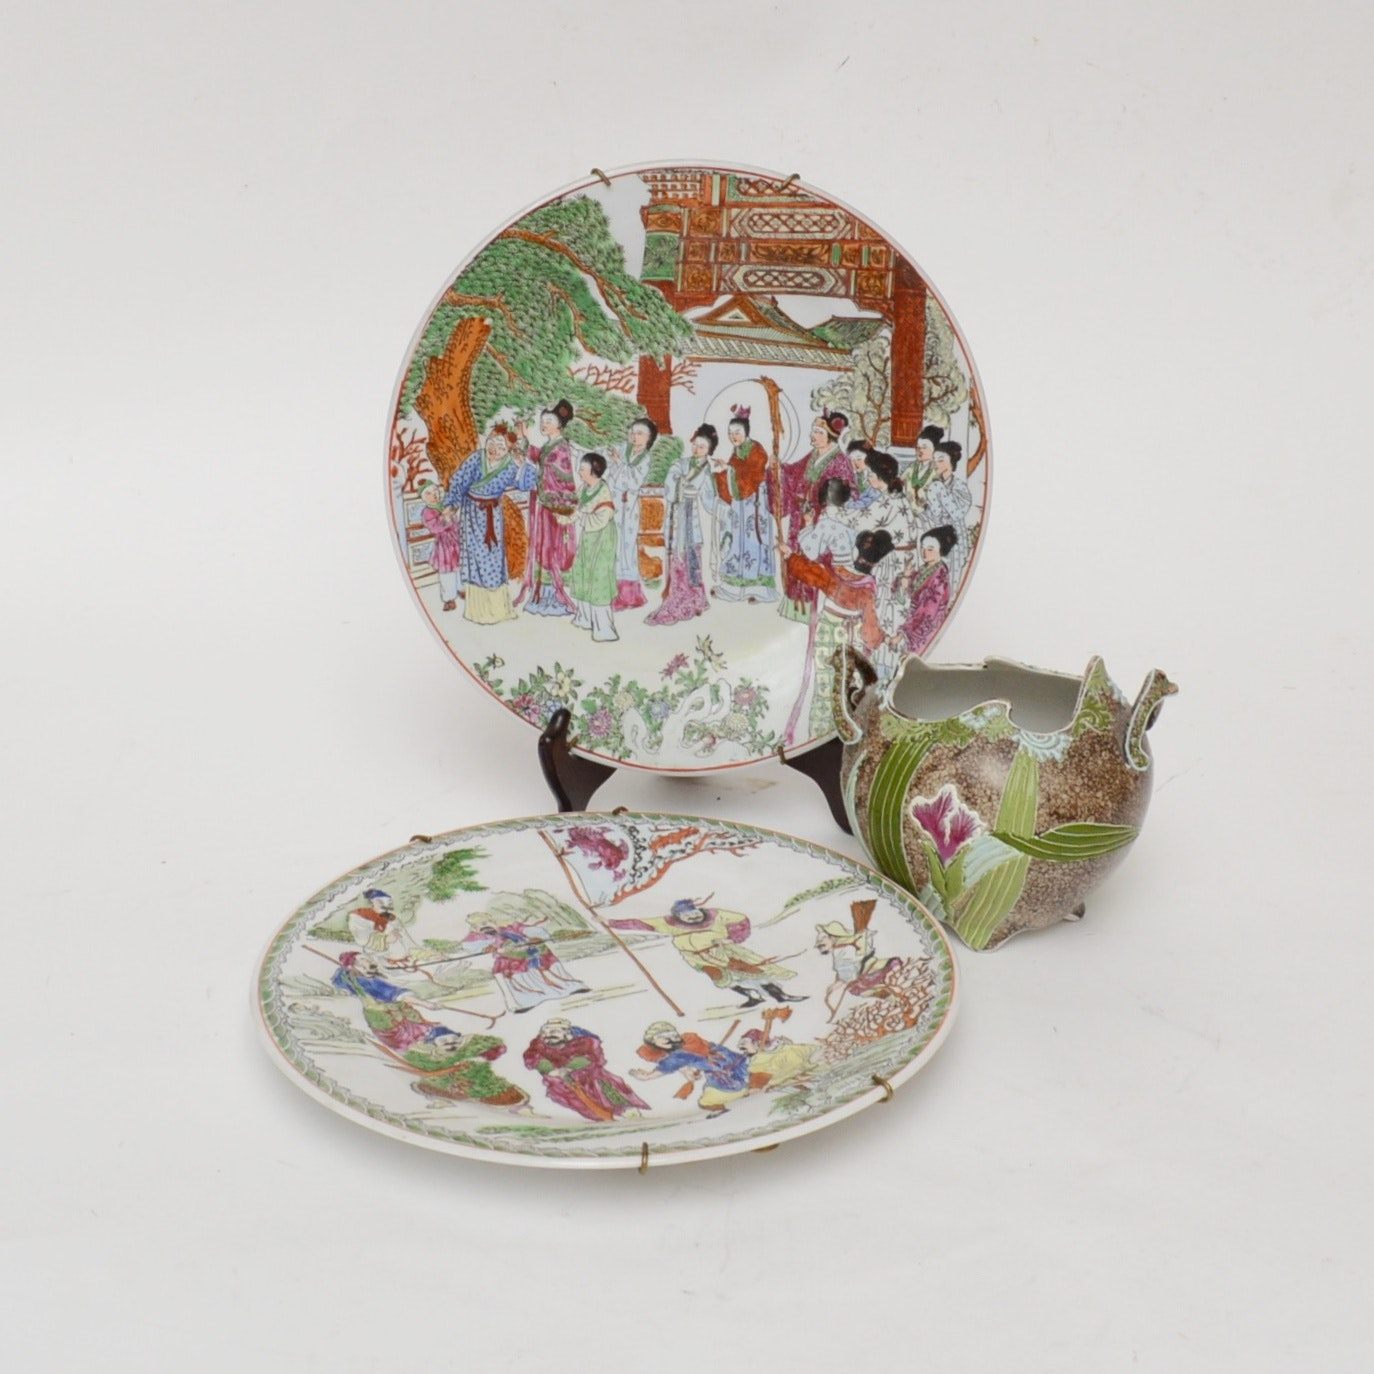 Chinese Decorative Plates and Japanese Vase